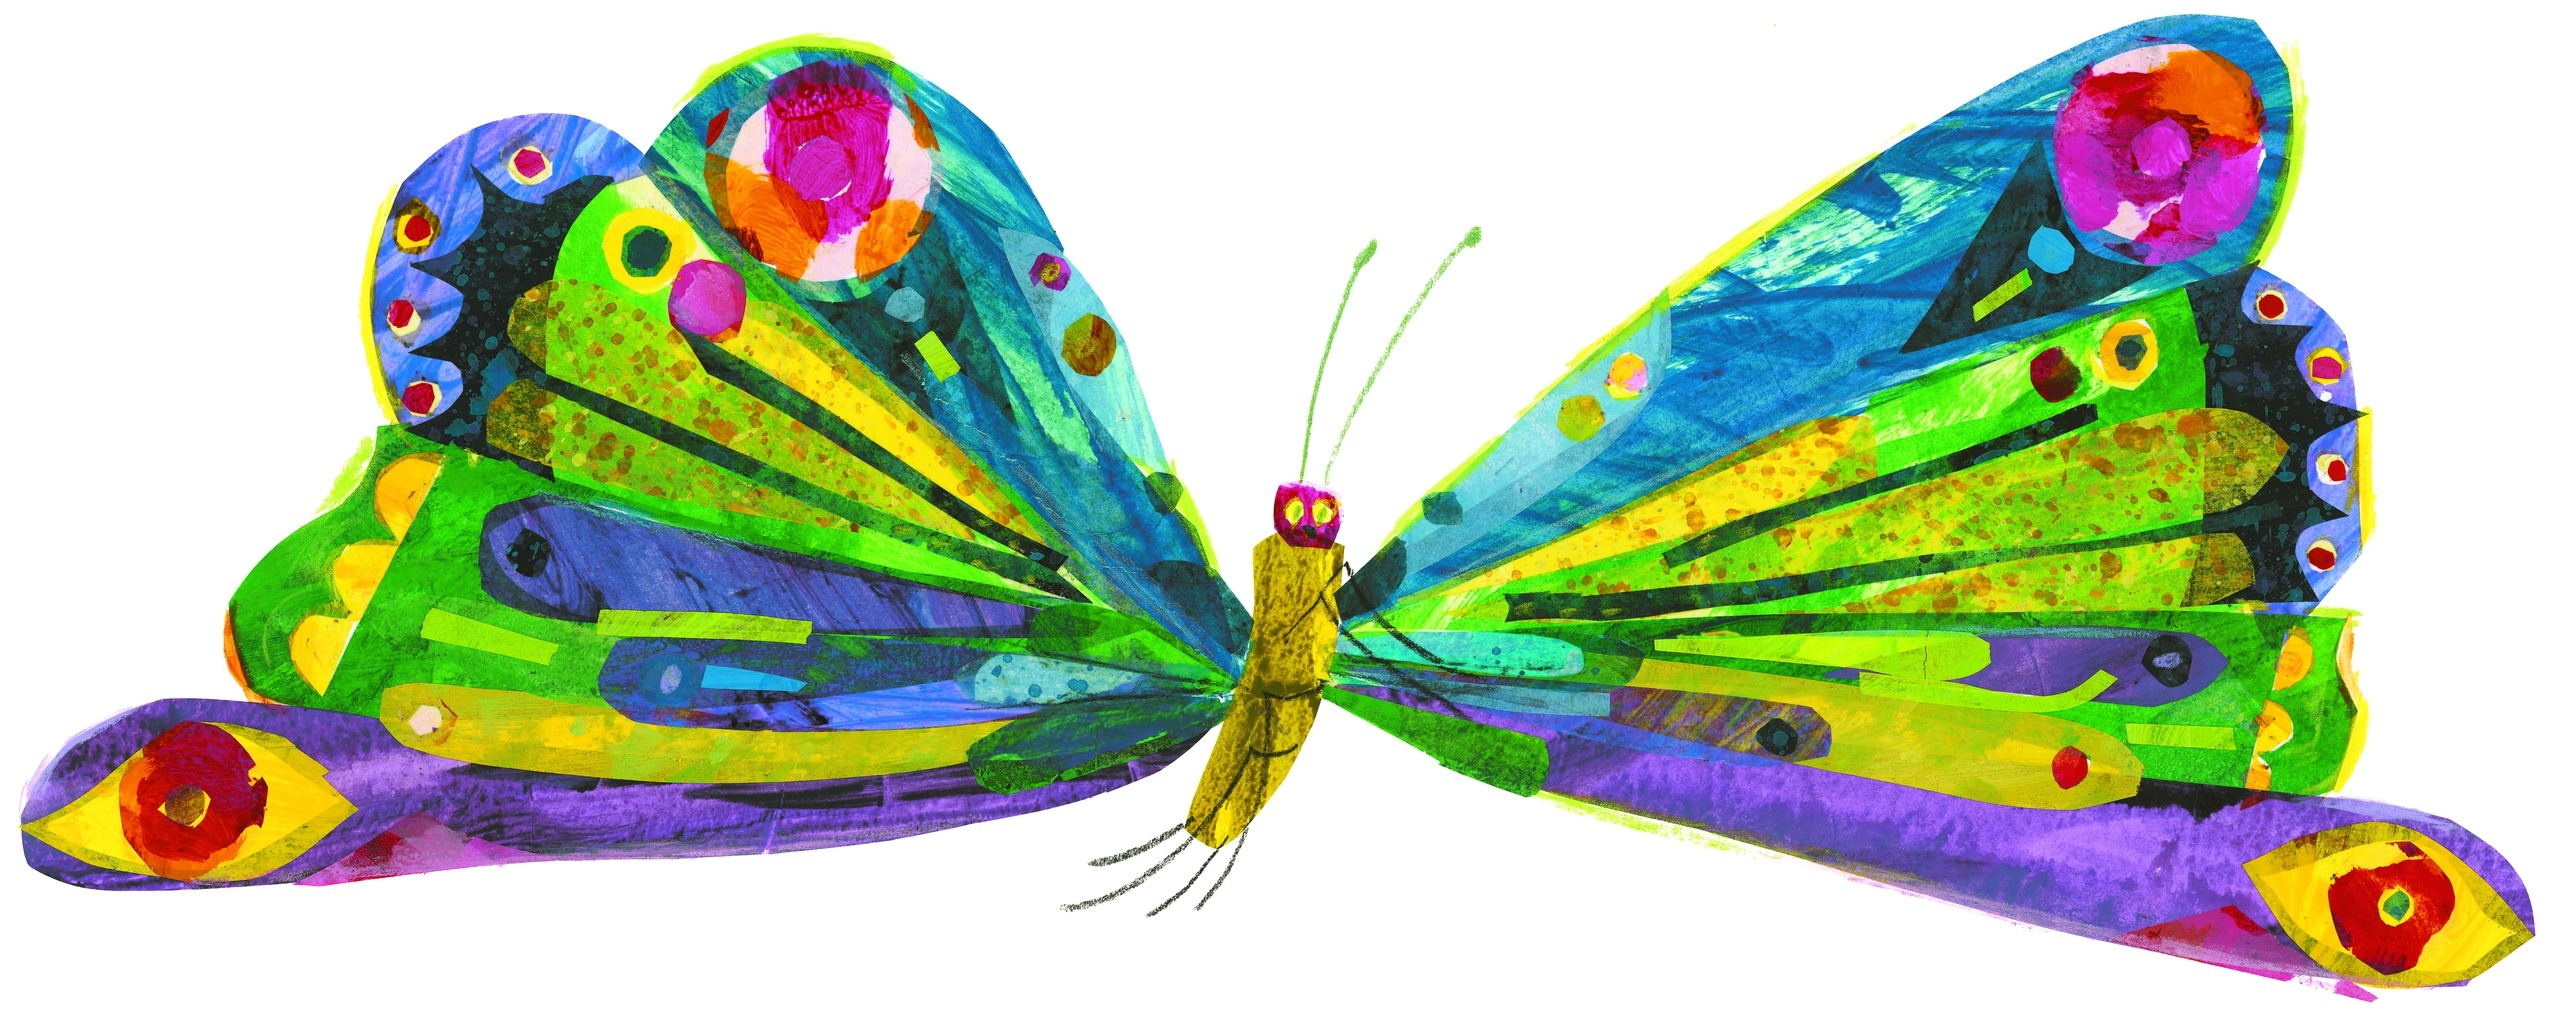 5th Grade The Hungry Caterpillar By Eric Carle